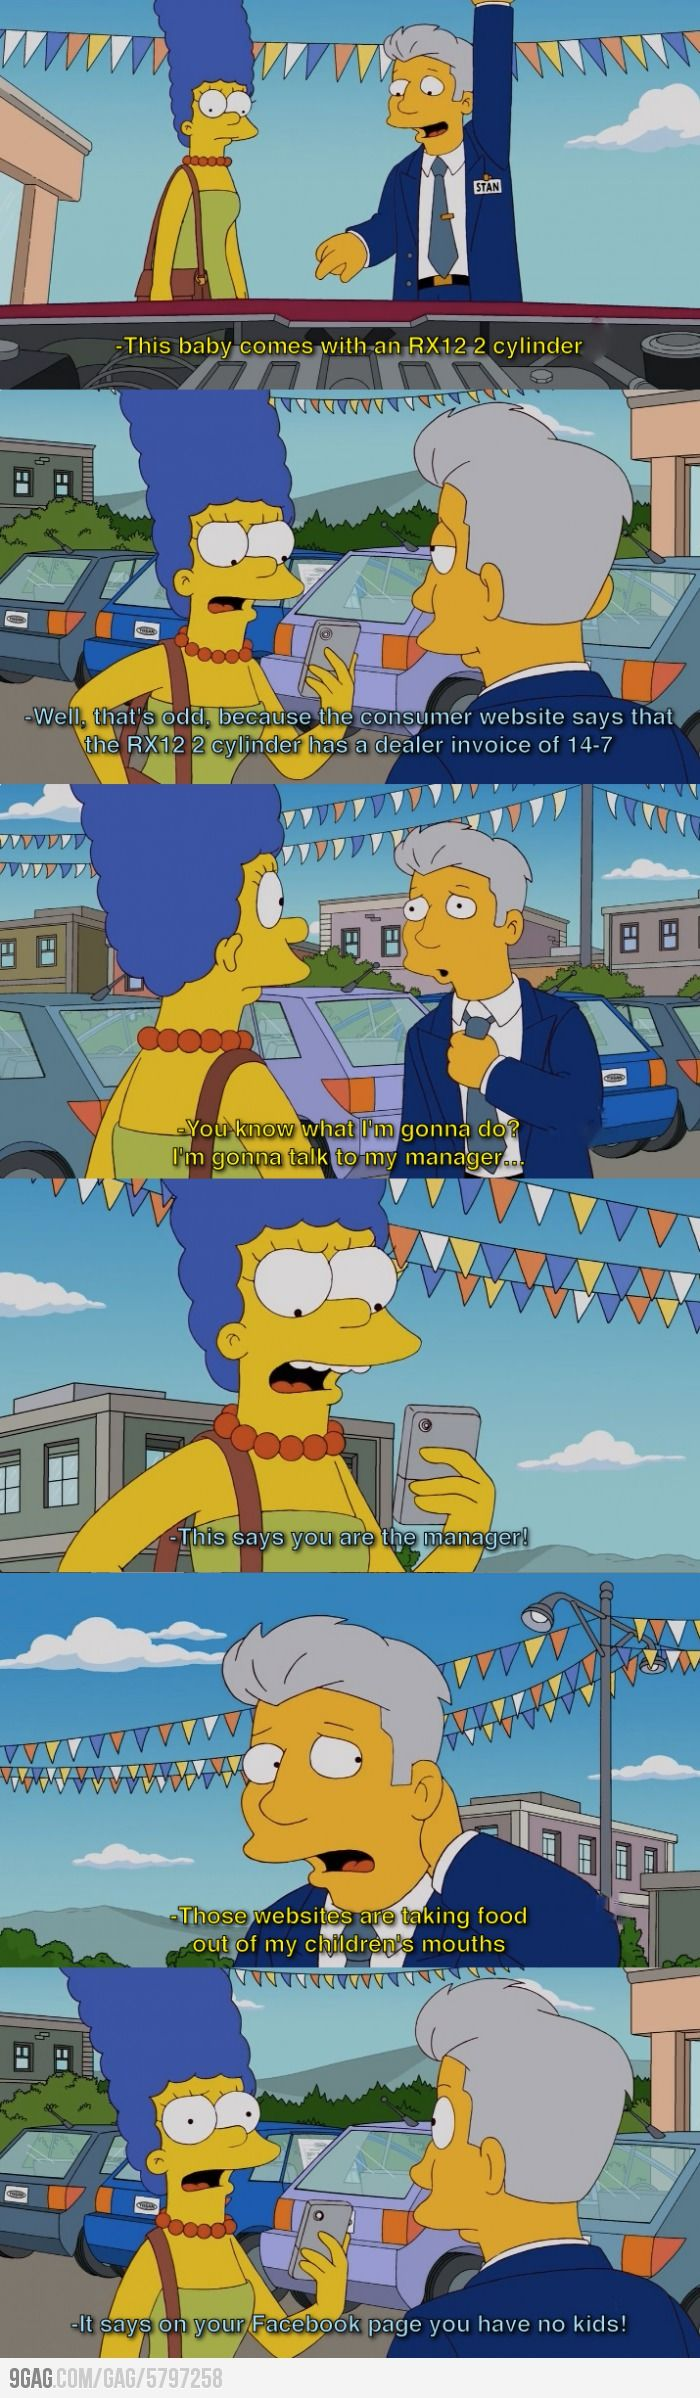 Haha, be more like Marge Simpson #lol Here are '6 common buying tips' she must have followed. Click to view!